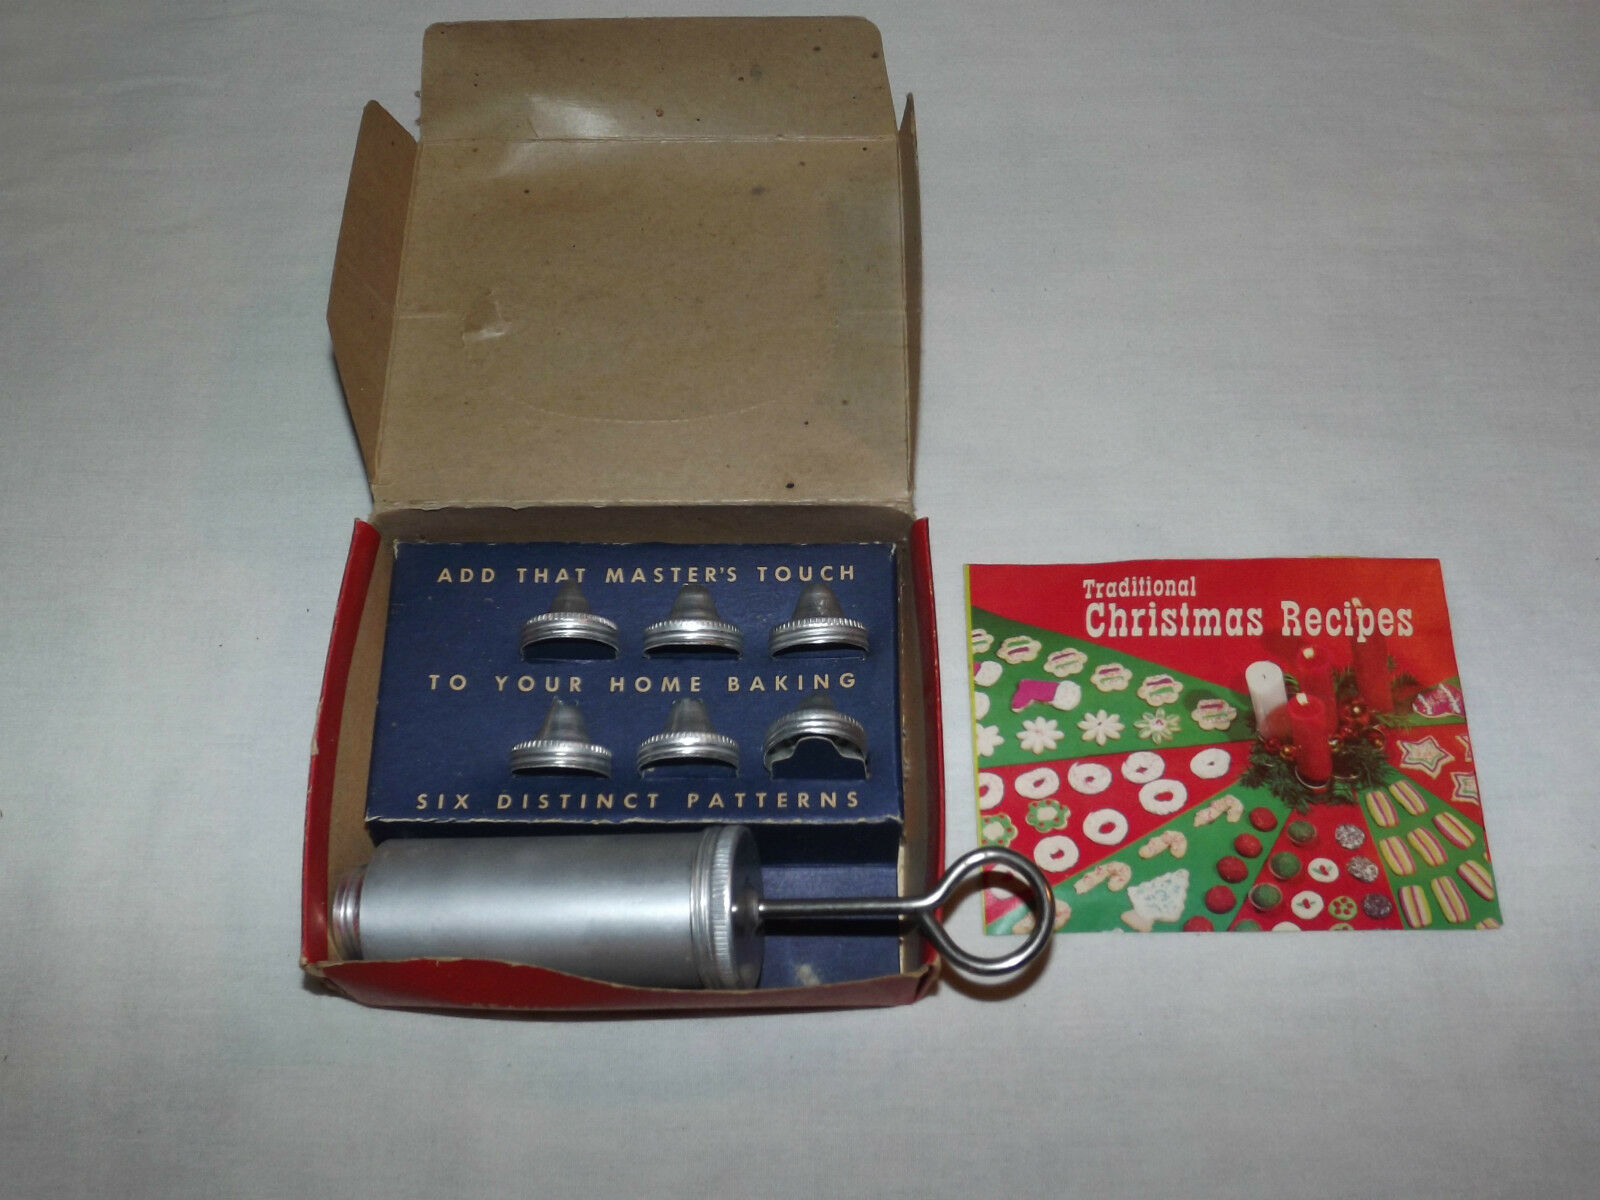 VINTAGE 1960S LORRAINE ALUMINUM CAKE DECORATOR IN BOX with CHRISTMAS RECIPES